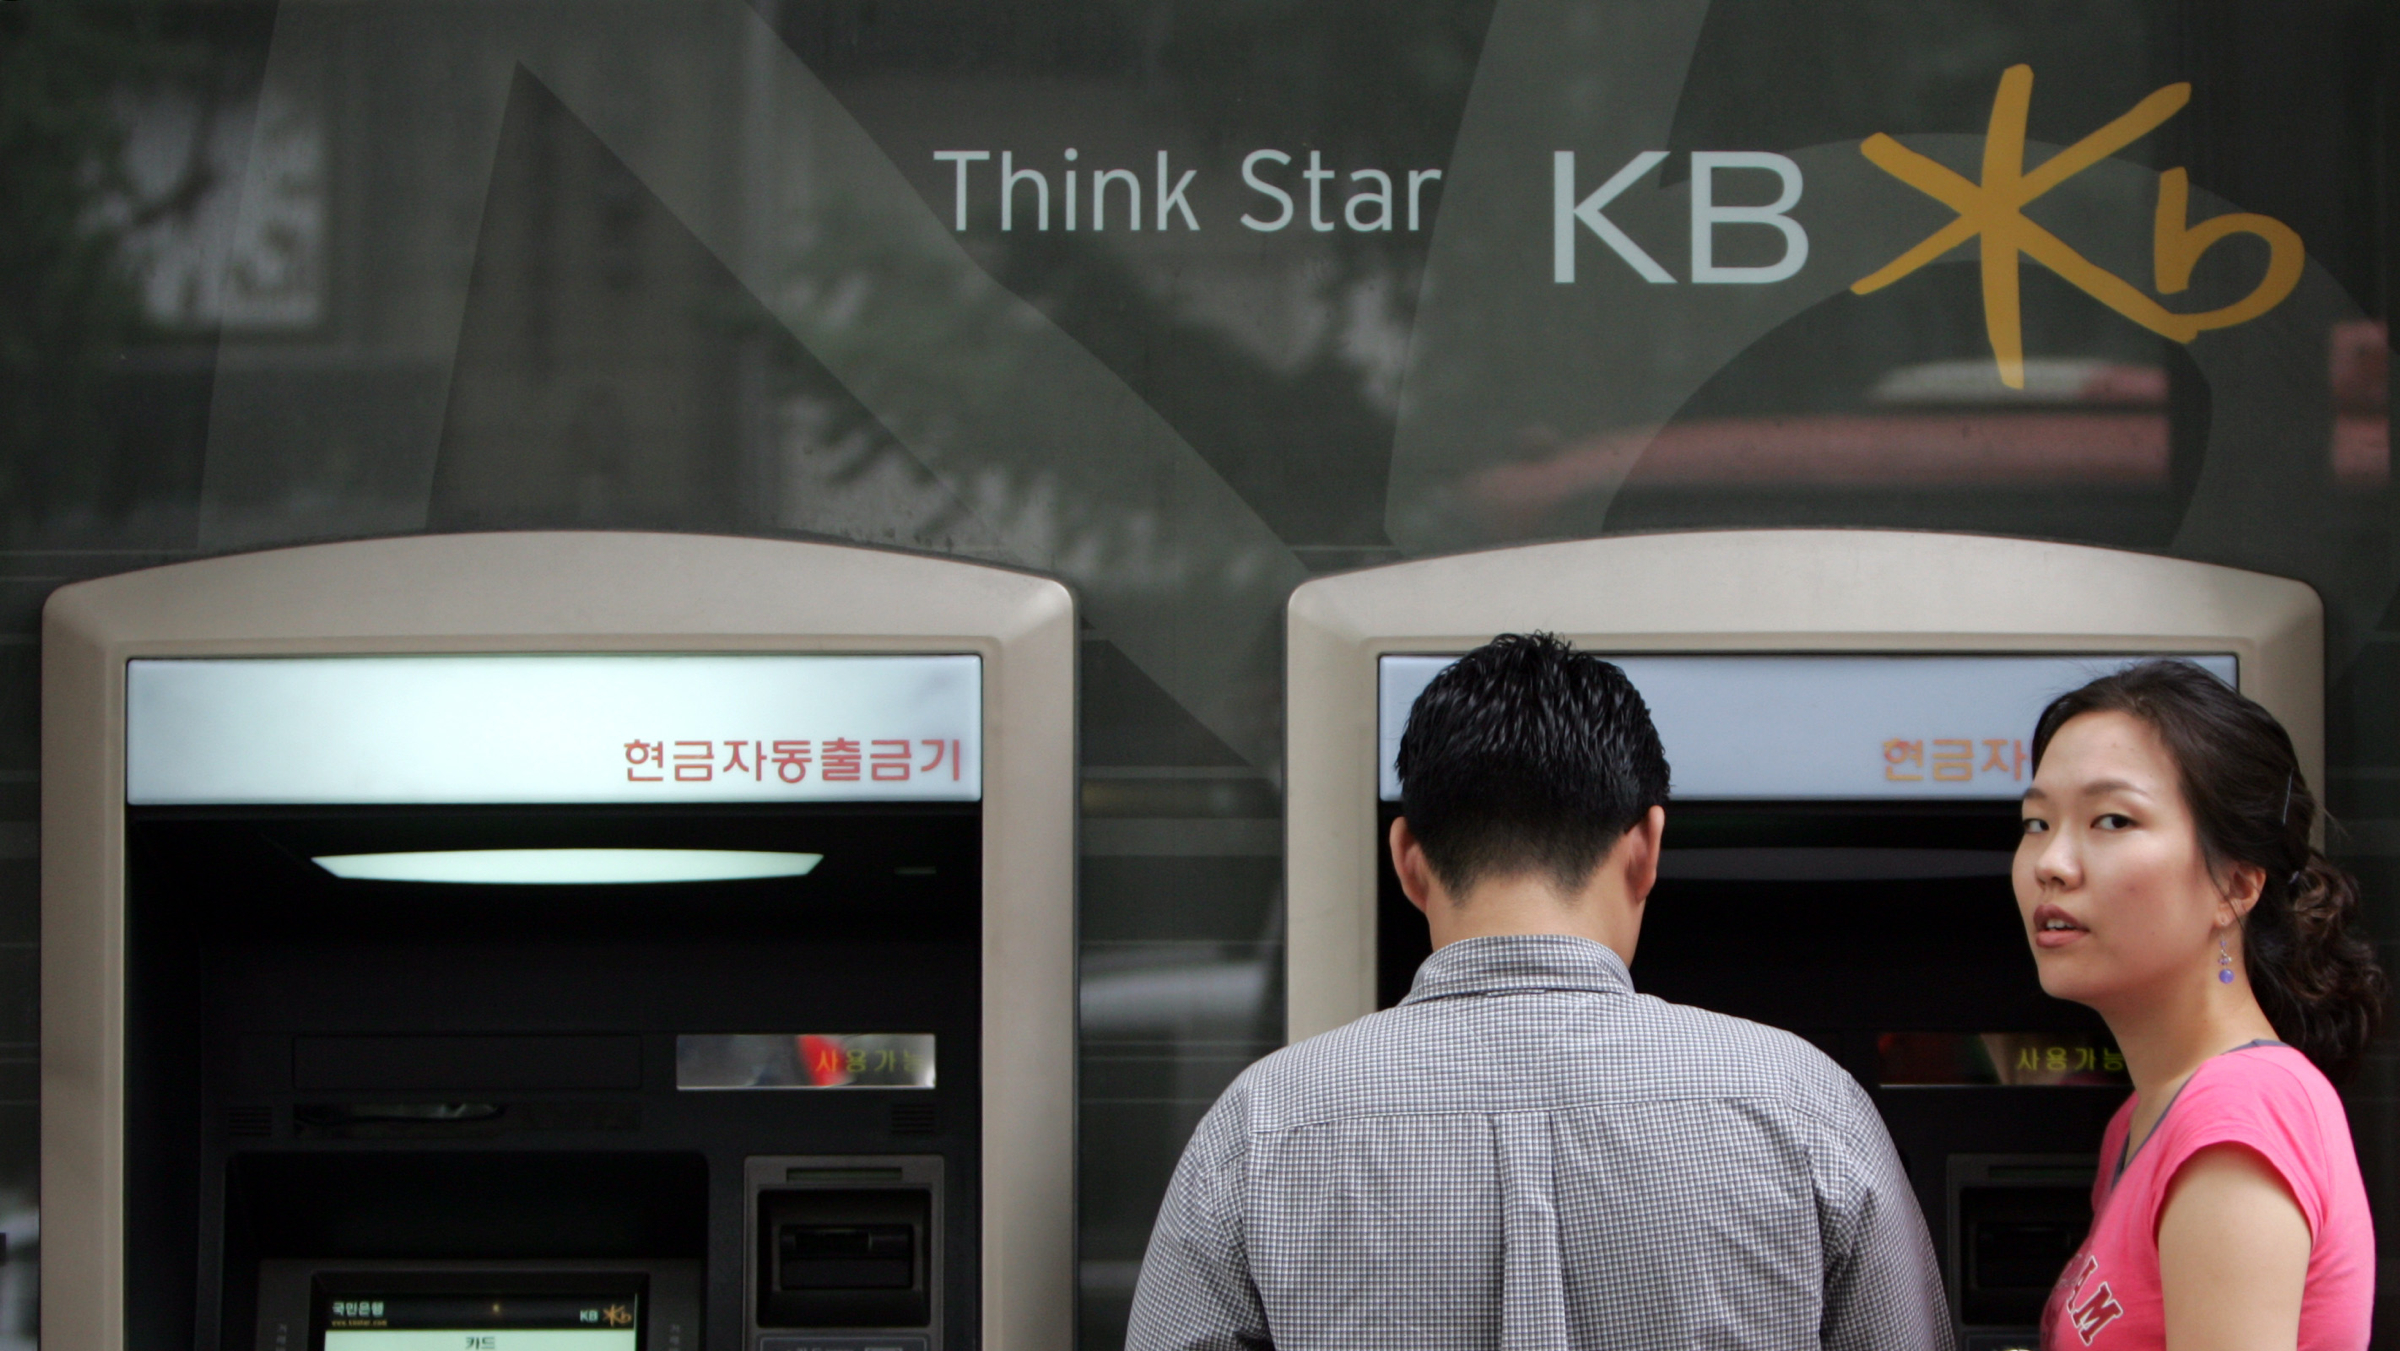 South Korean customers use ATMs at Kookmin Bank in Seoul August 26, 2004. South Korea's top financial regulator confirmed on Thursday the chief executive of Kookmin Bank, Kim Jung-tae, would be unable to seek another term due to accounting problems at the country's top lender. REUTERS/Lee Jae-Won  LJW/SH - RTR99X4